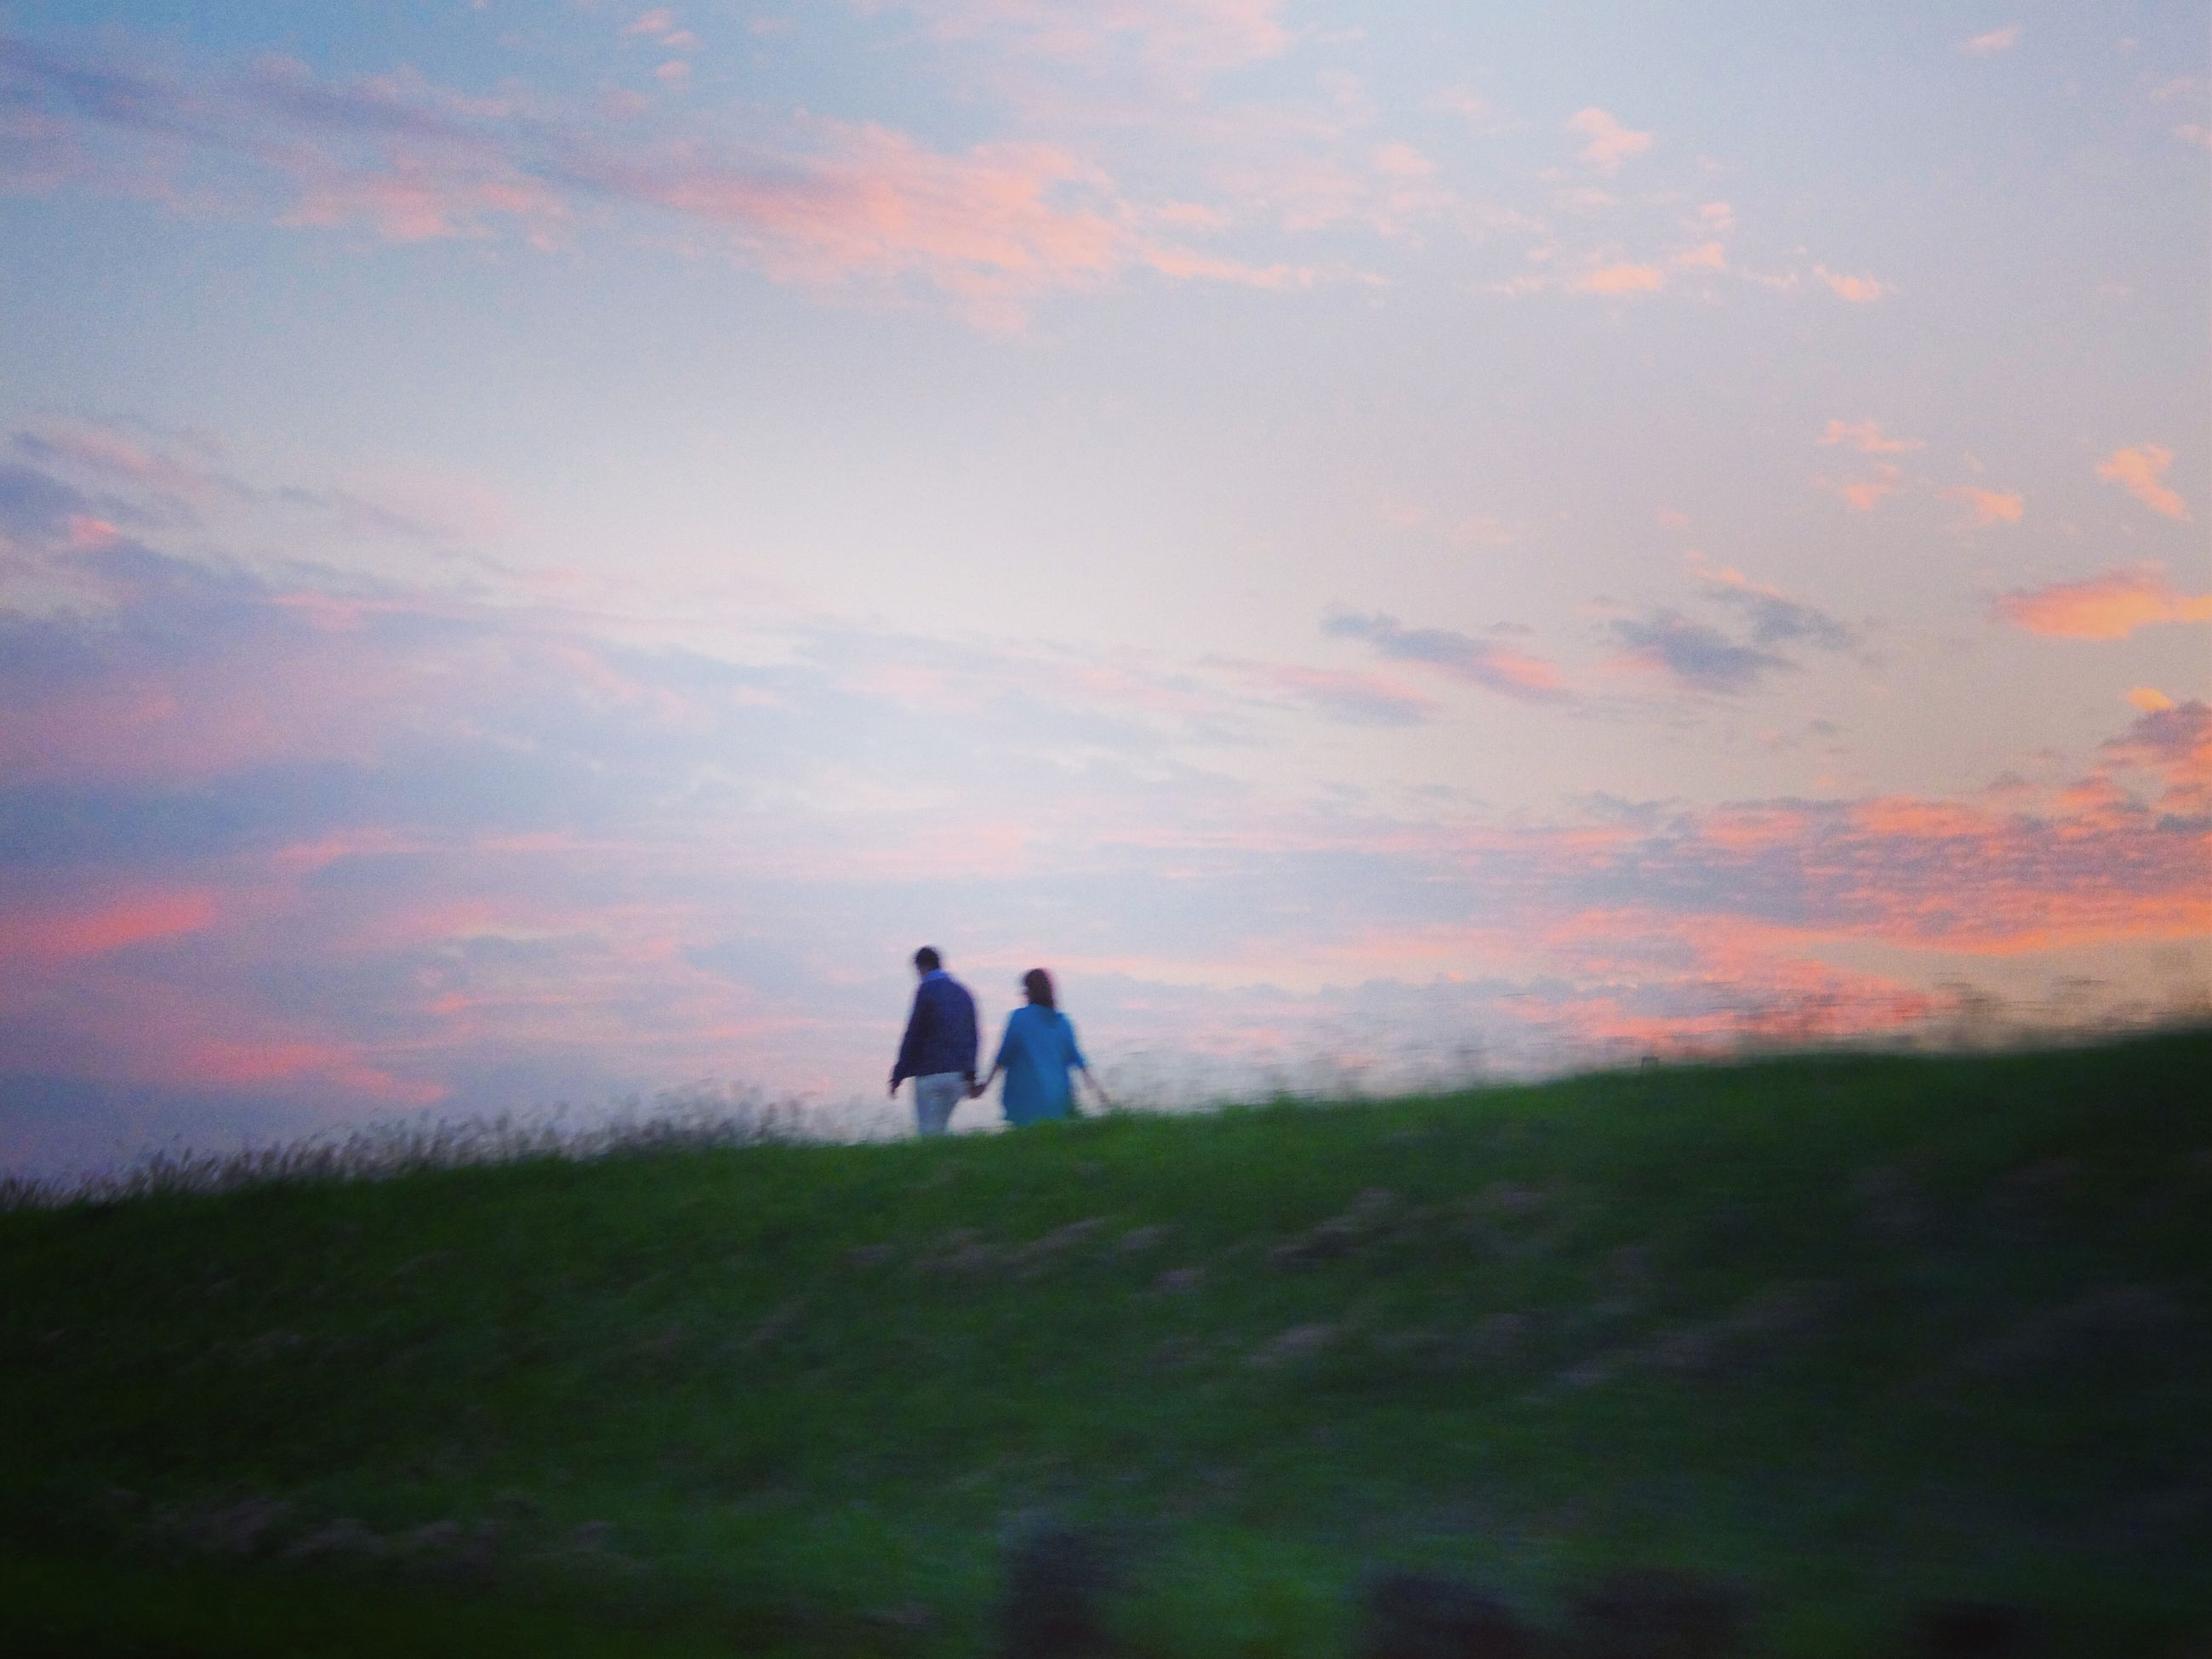 sky, sunset, landscape, tranquil scene, field, tranquility, men, lifestyles, grass, leisure activity, scenics, beauty in nature, rear view, silhouette, nature, standing, cloud - sky, person